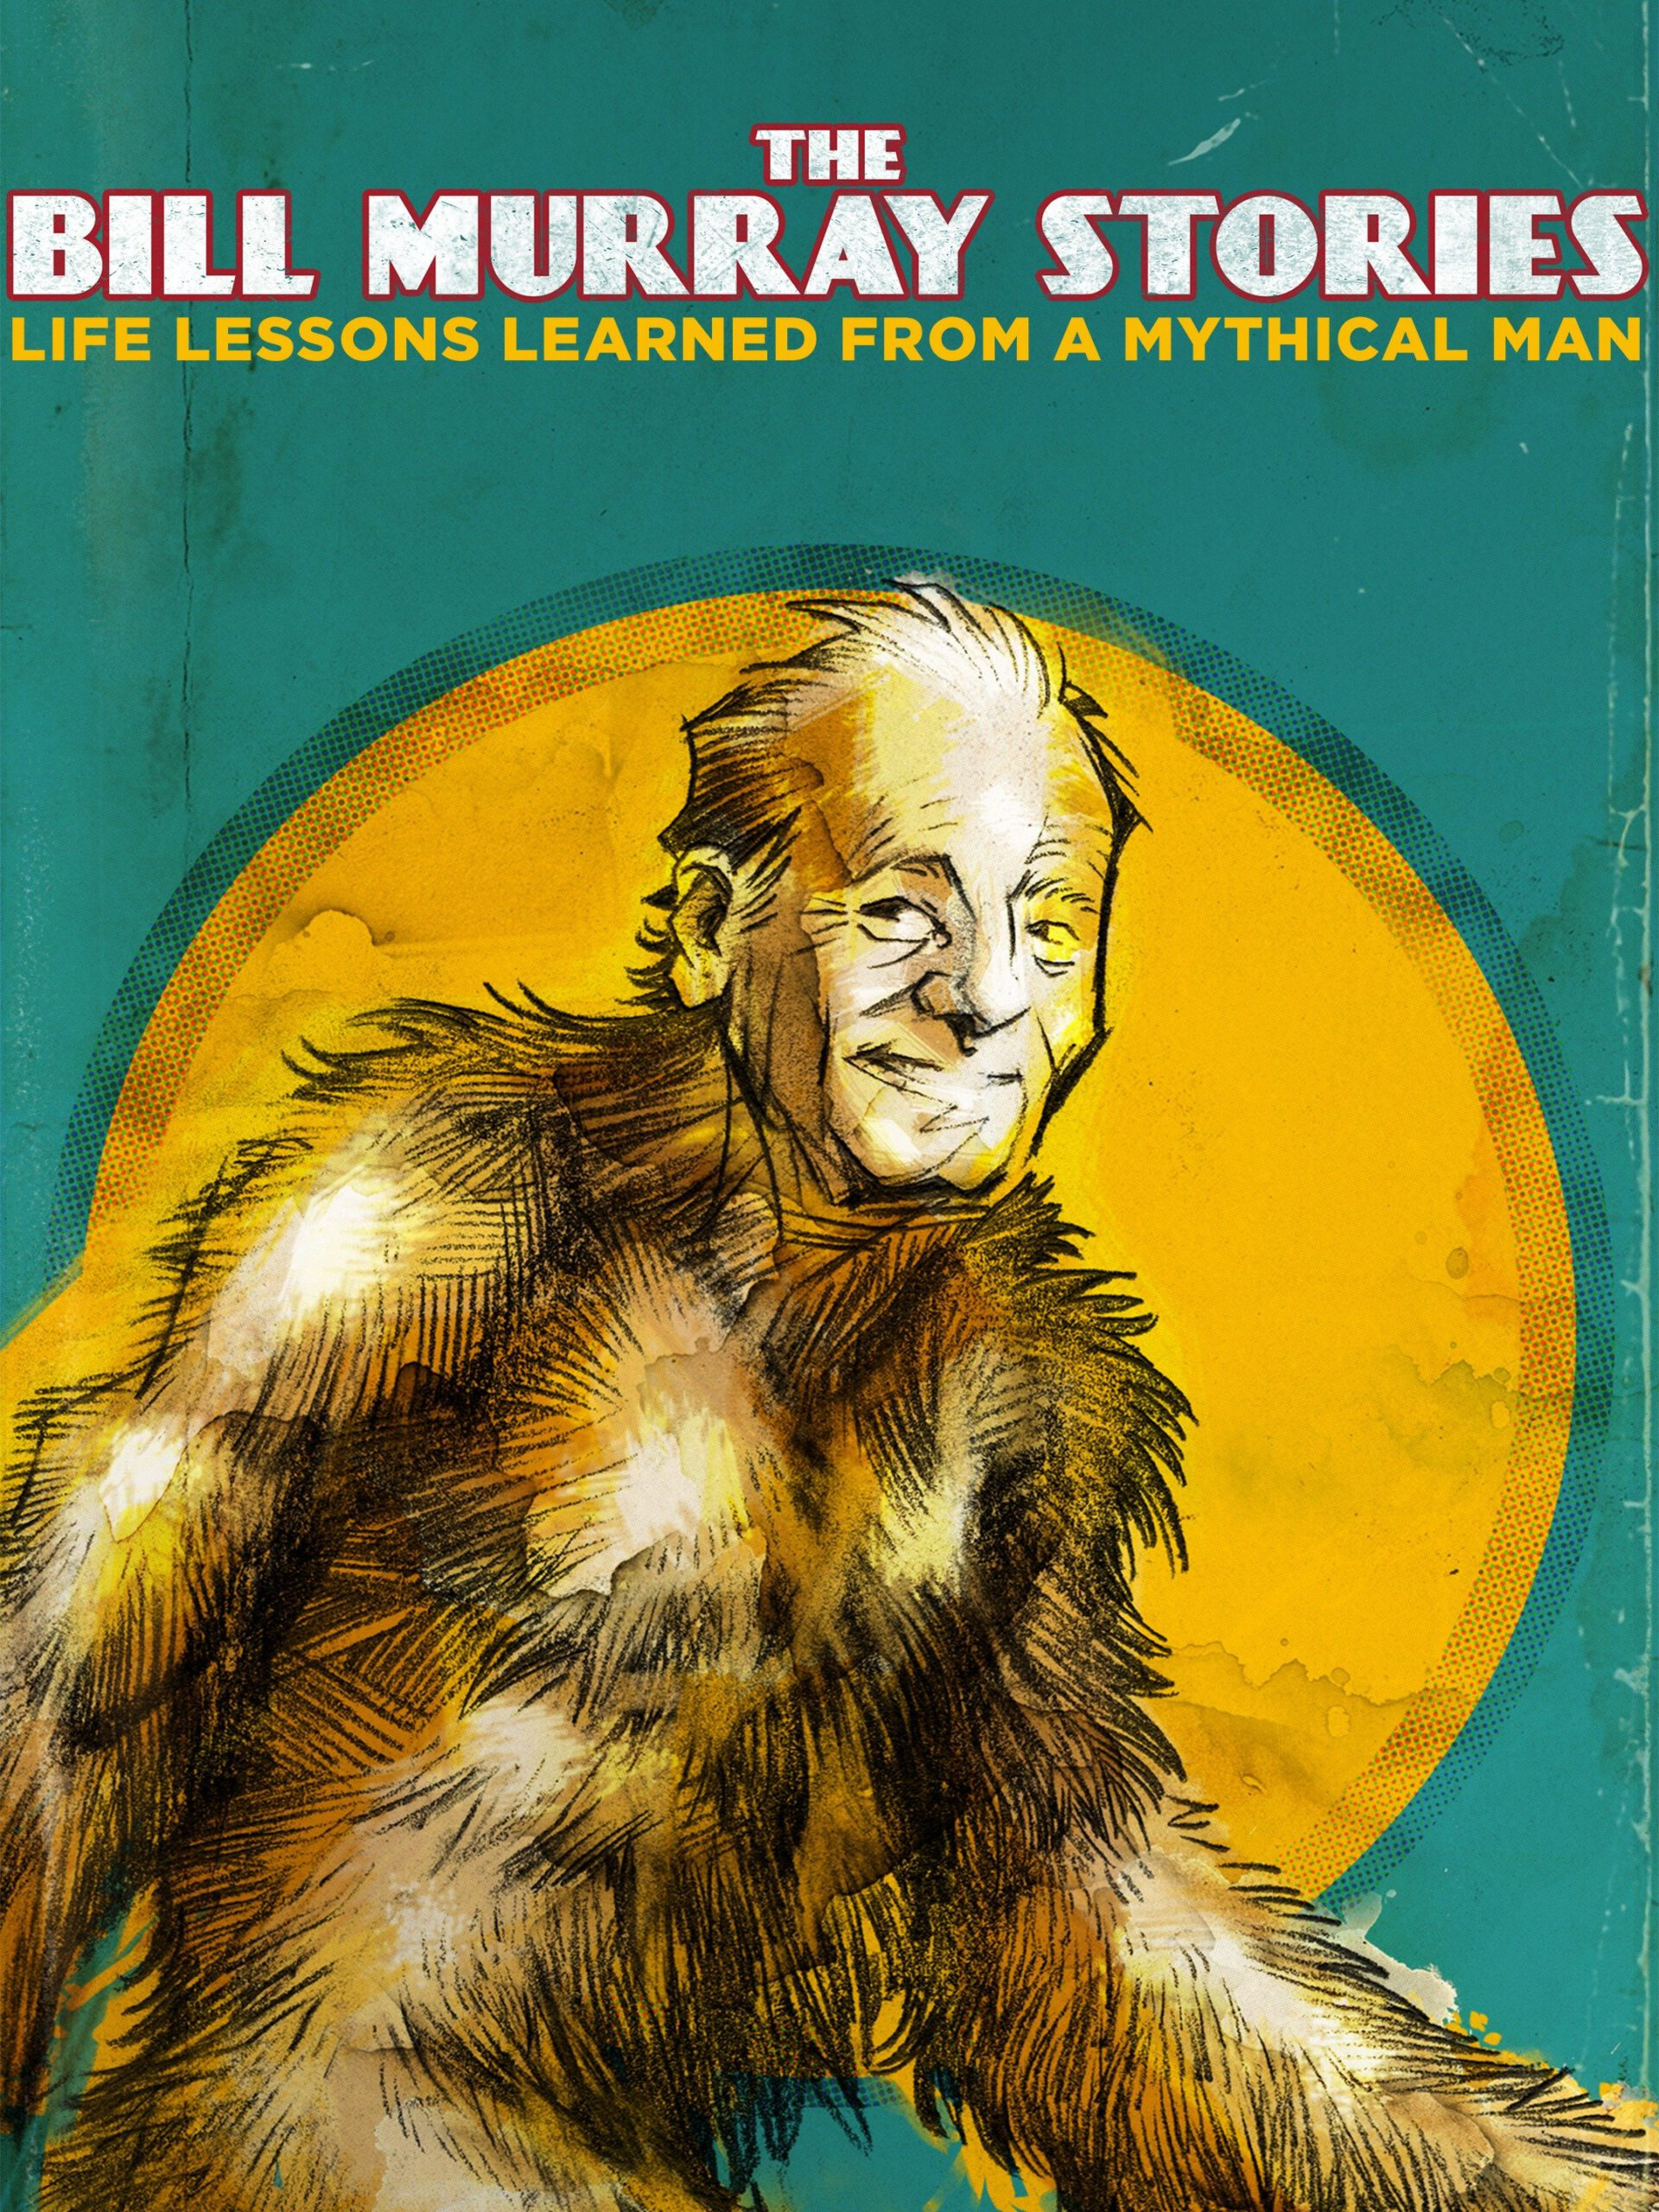 ดูหนังออนไลน์ฟรี The Bill Murray Stories Life Lessons Learned from a Mythical Man (2018)